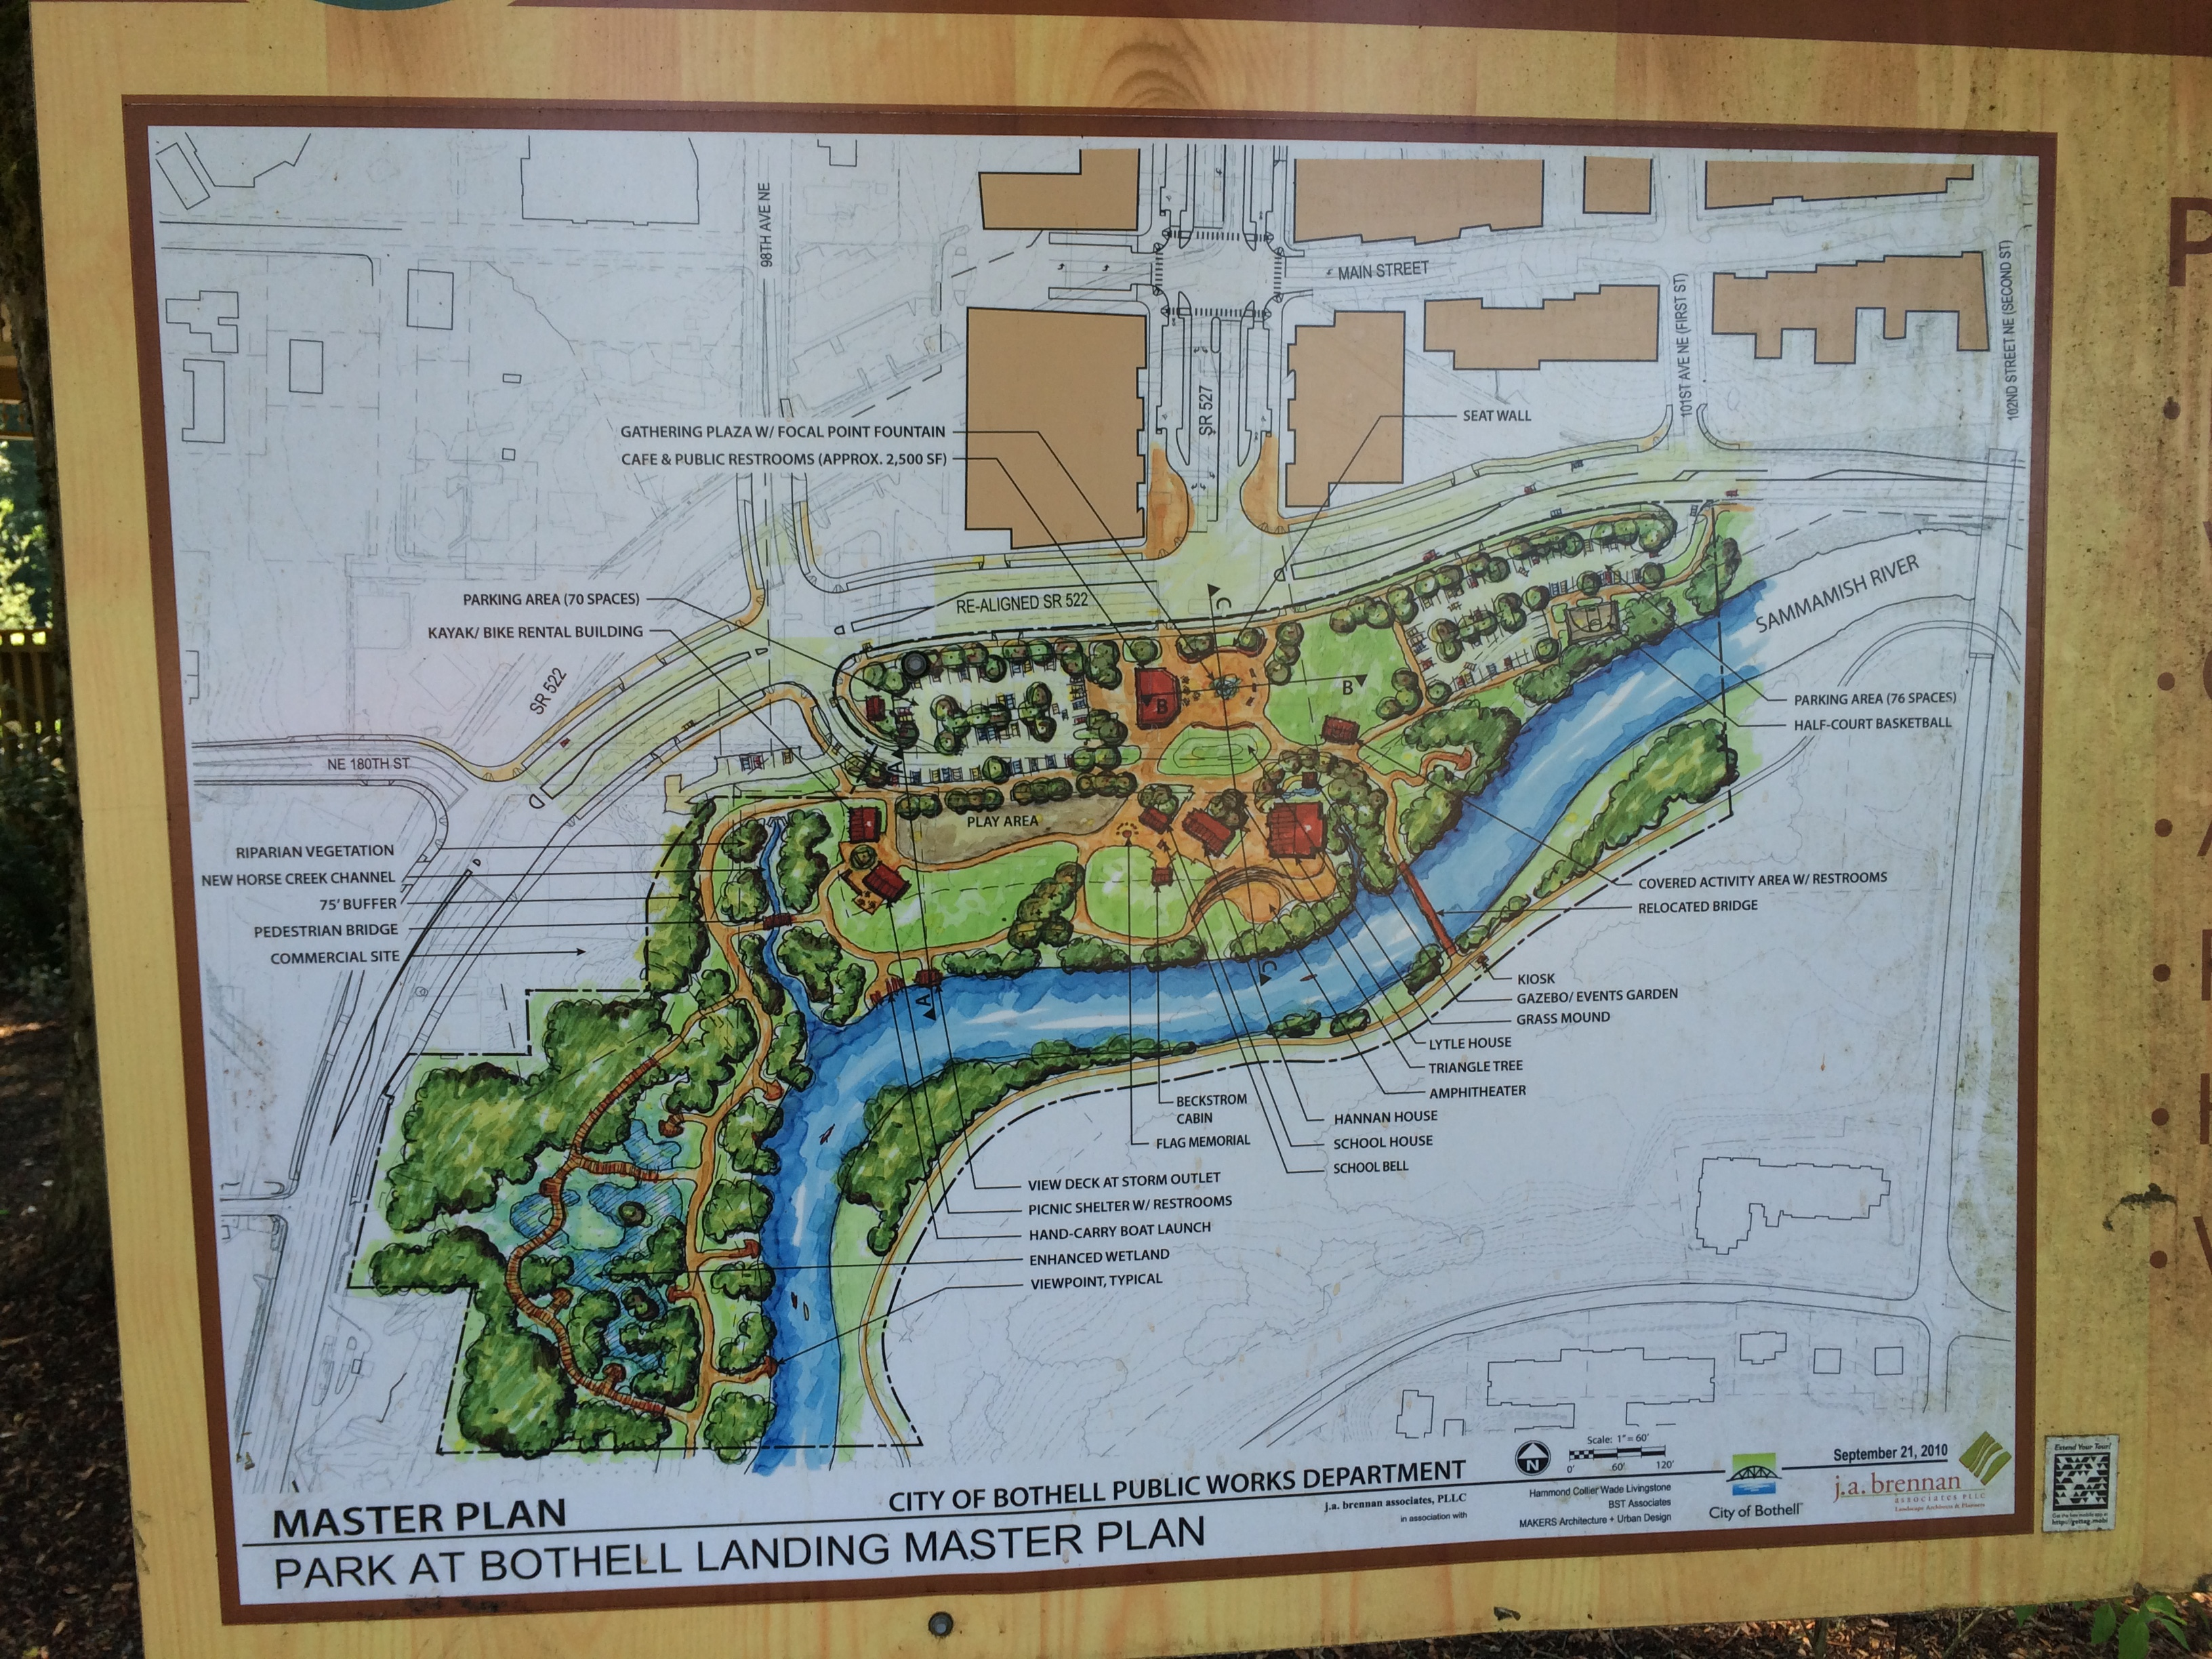 Park at Bothell Landing Master Plan